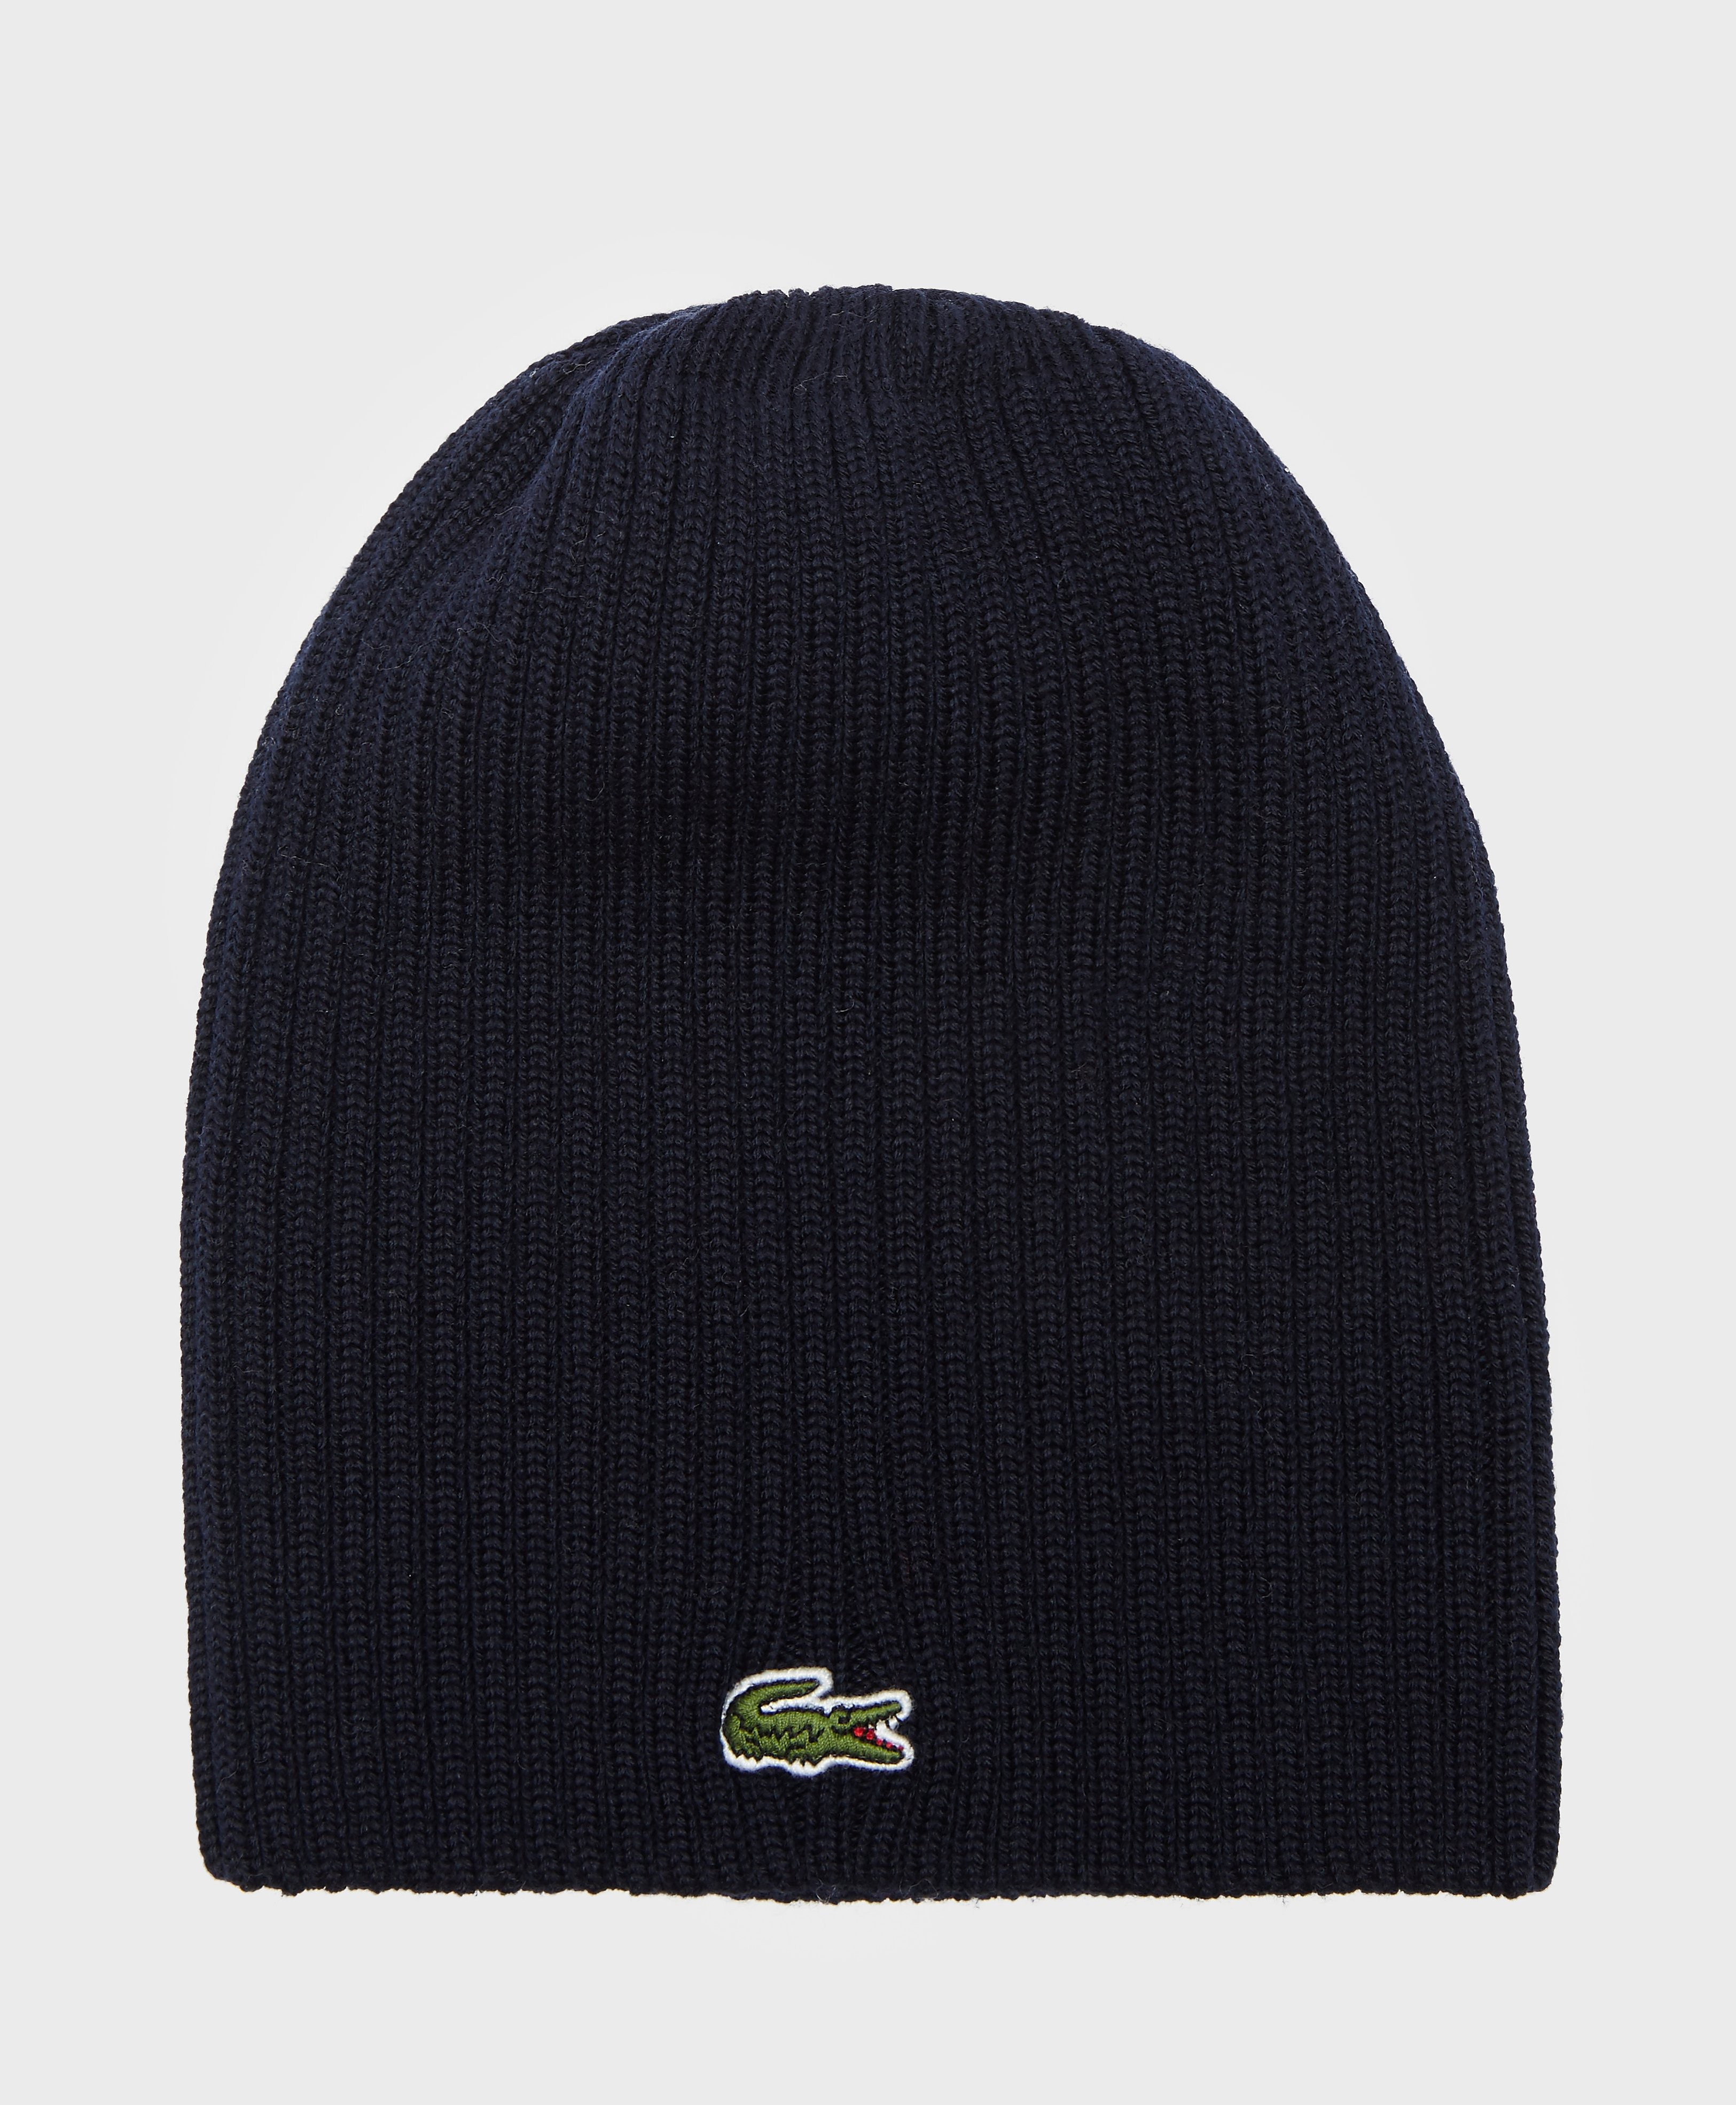 Lacoste Pip Beanie Hat